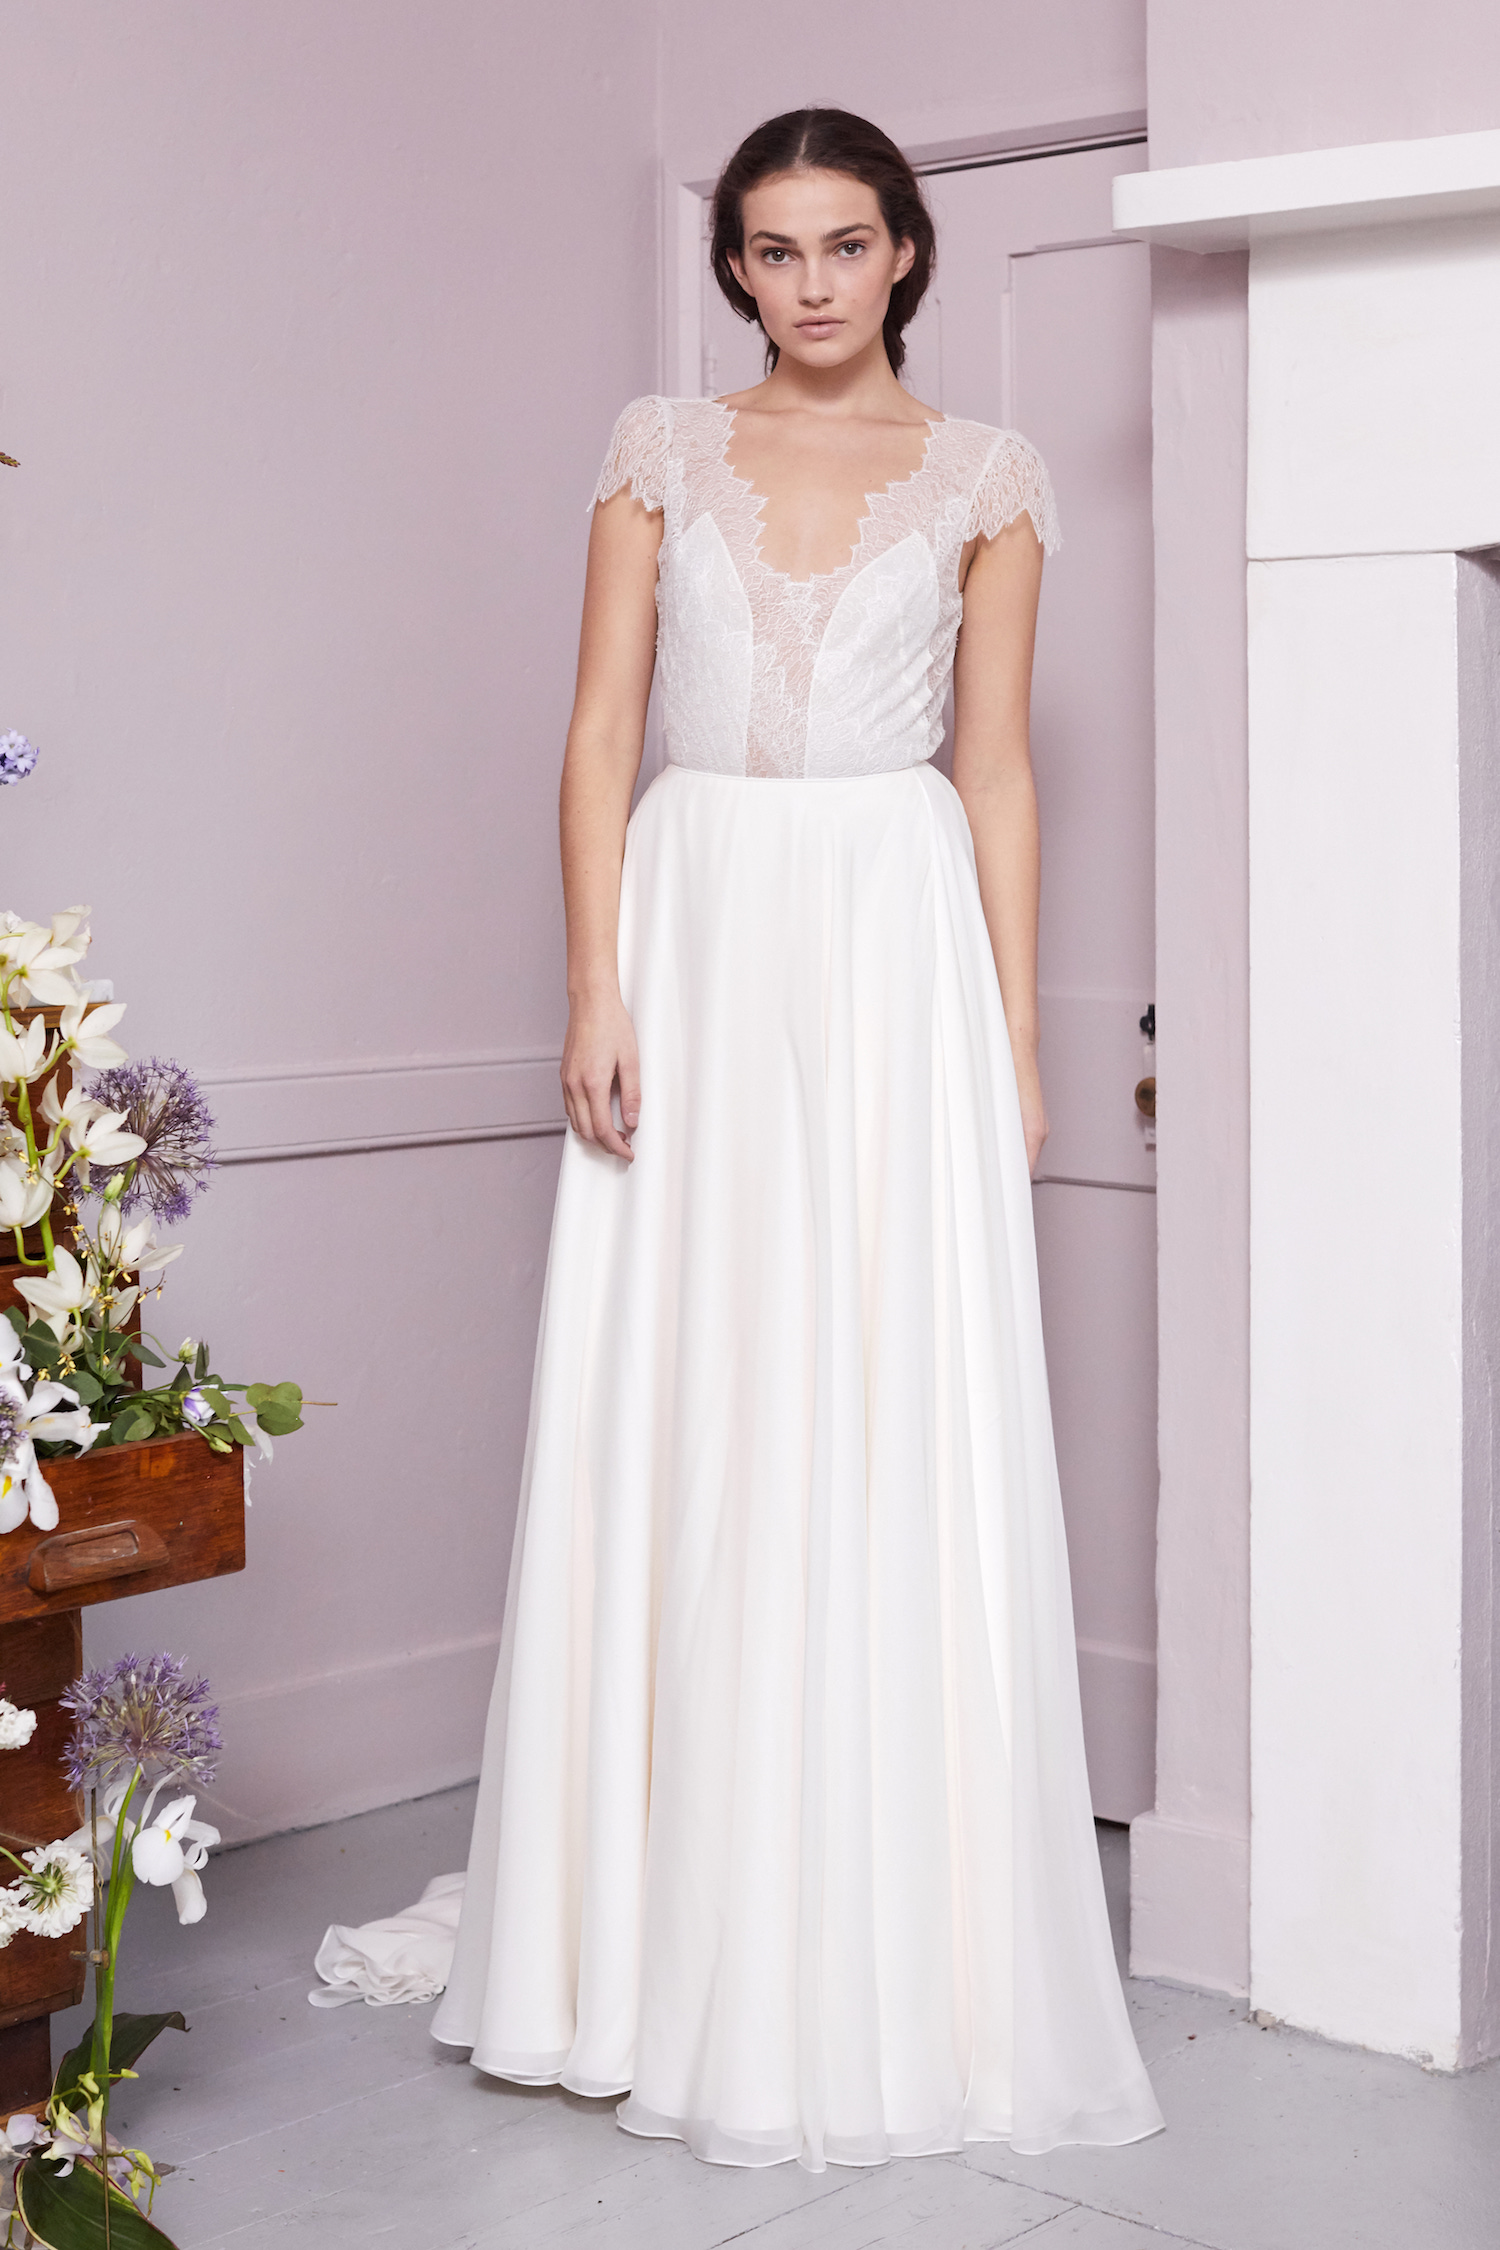 DEAN DRESS | WEDDING DRESS BY HALFPENNY LONDON